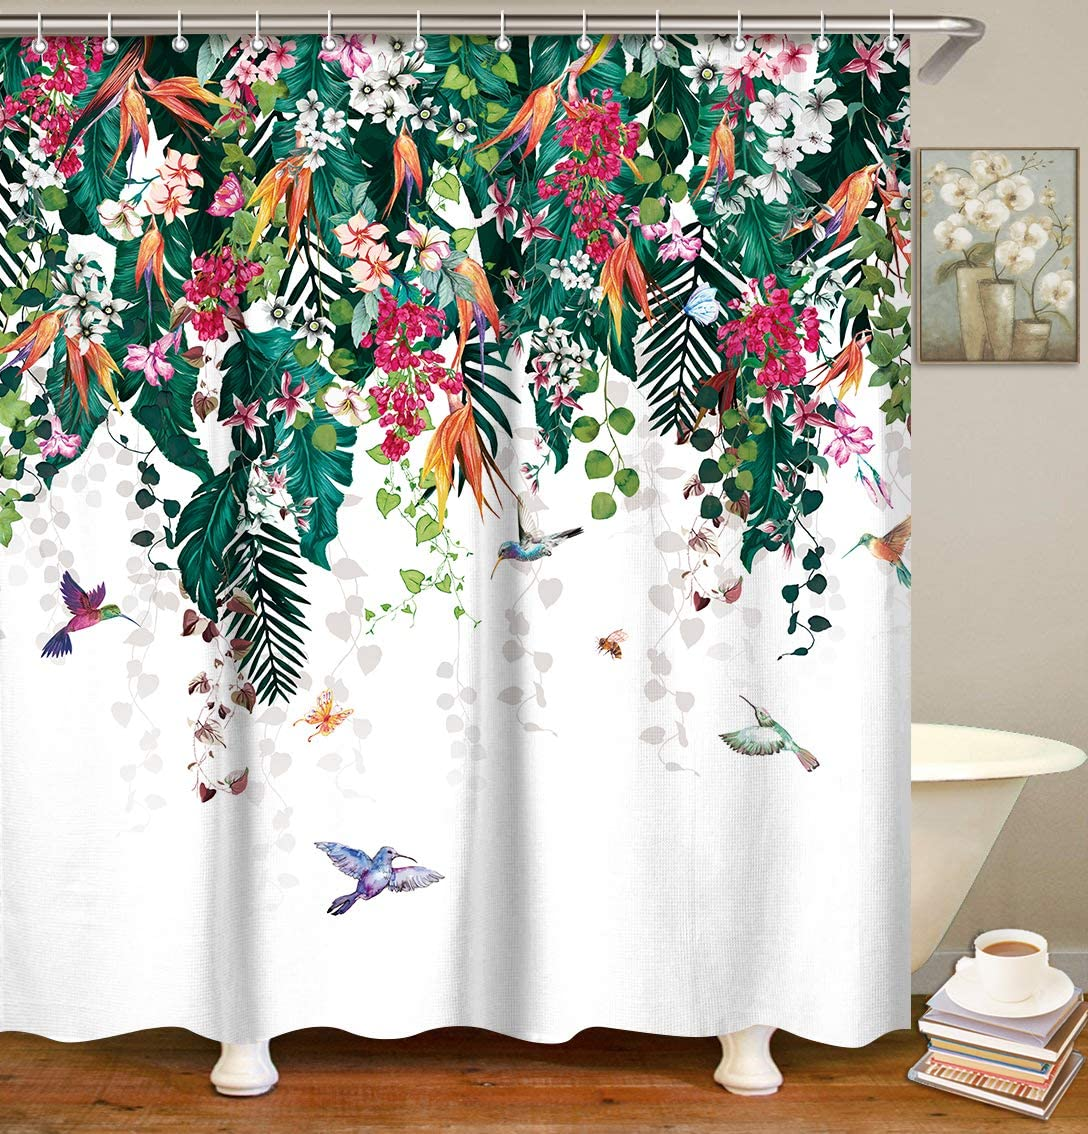 LIVILAN Summer Floral Shower Curtain Green Plant Shower Curtain with 12 Hooks, Leaf Flower Bird Spring Botanical Tropical Decorative Fabric Bath Curtain, Machine Washable